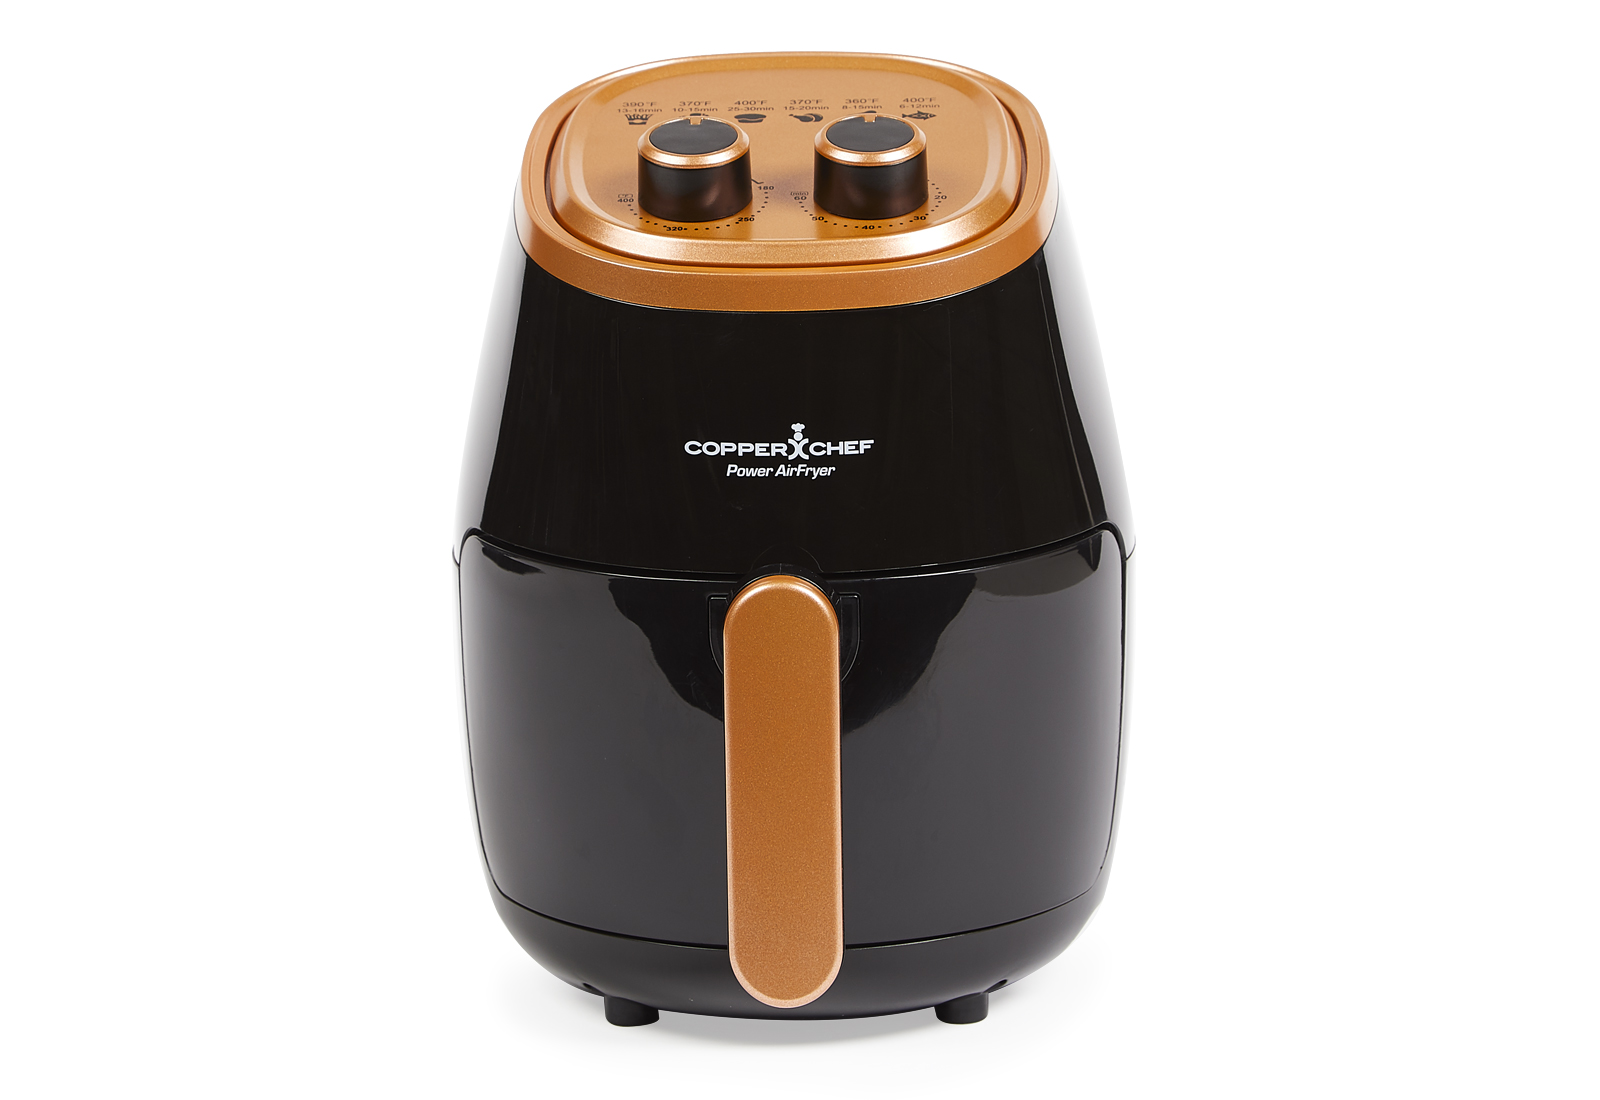 Copper Chef AirFryer Product Image